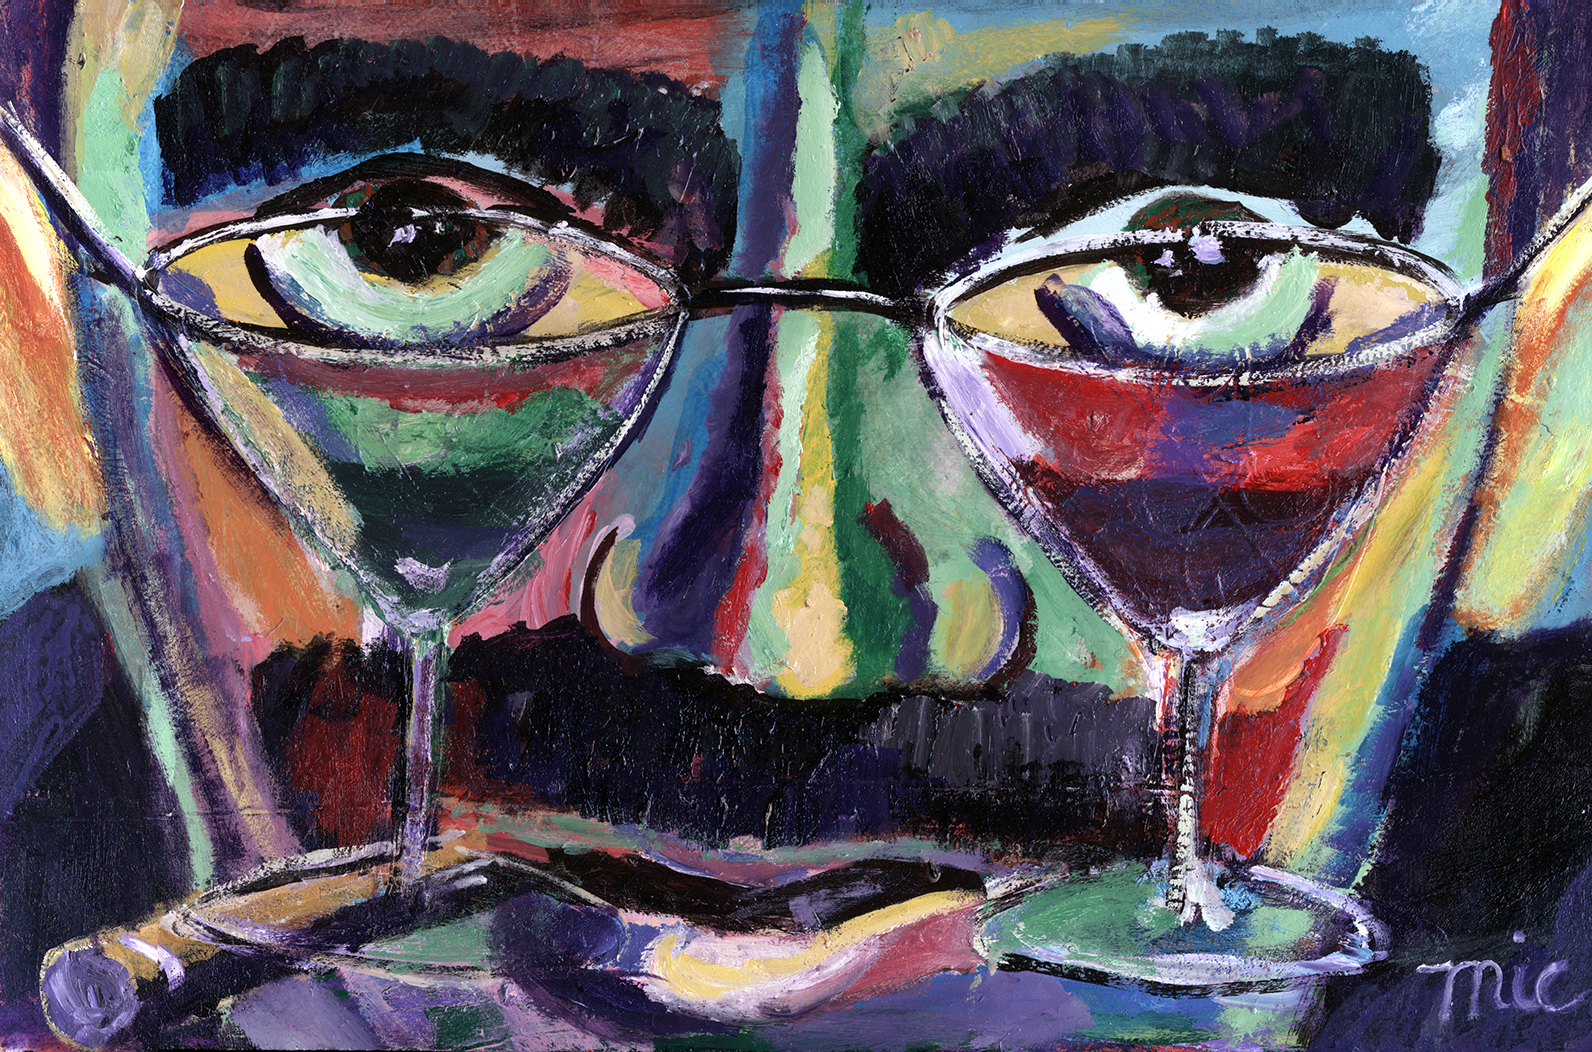 Groucho Martini's - Oil on Italian canvas, Private Collection Steve Billmeire and Darlene FrederickGiclee Limited Edition and canvas prints are available. Please visit the prints gallery.